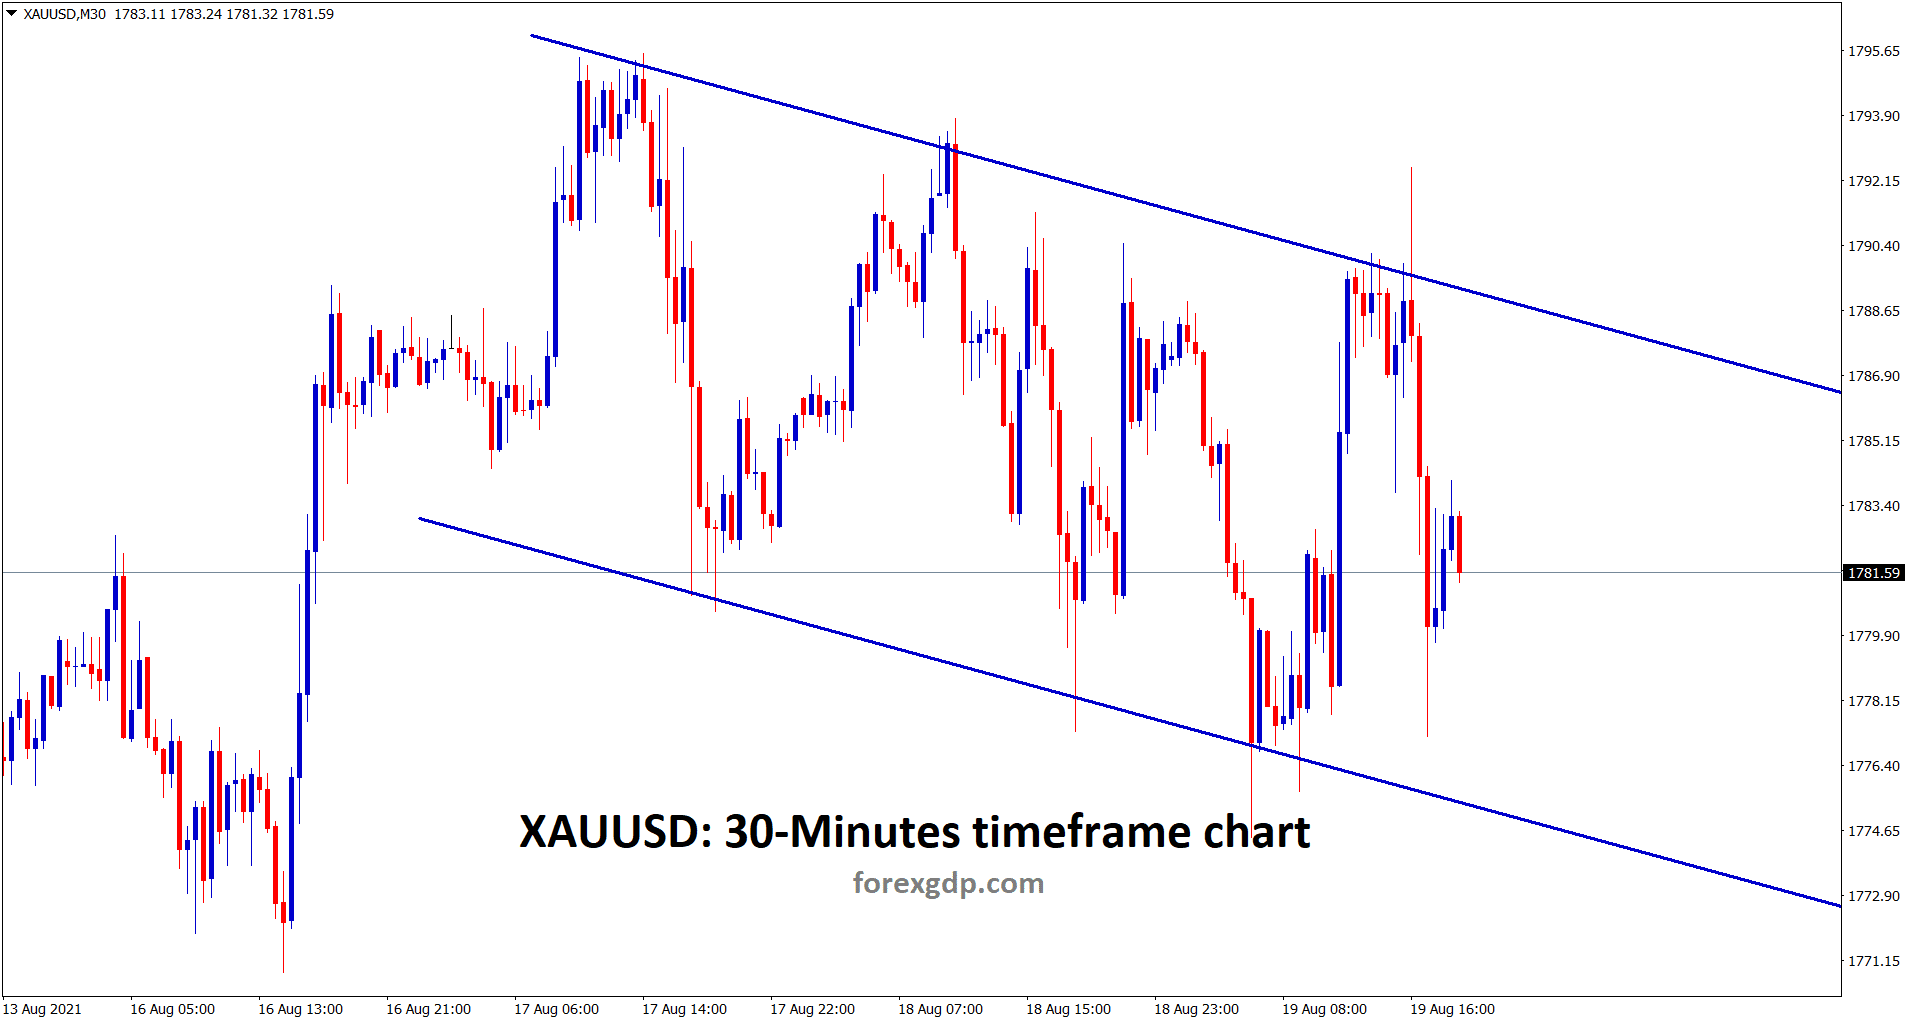 Gold is moving up and down between the channel range wait for the confirmation of breakout from this channel